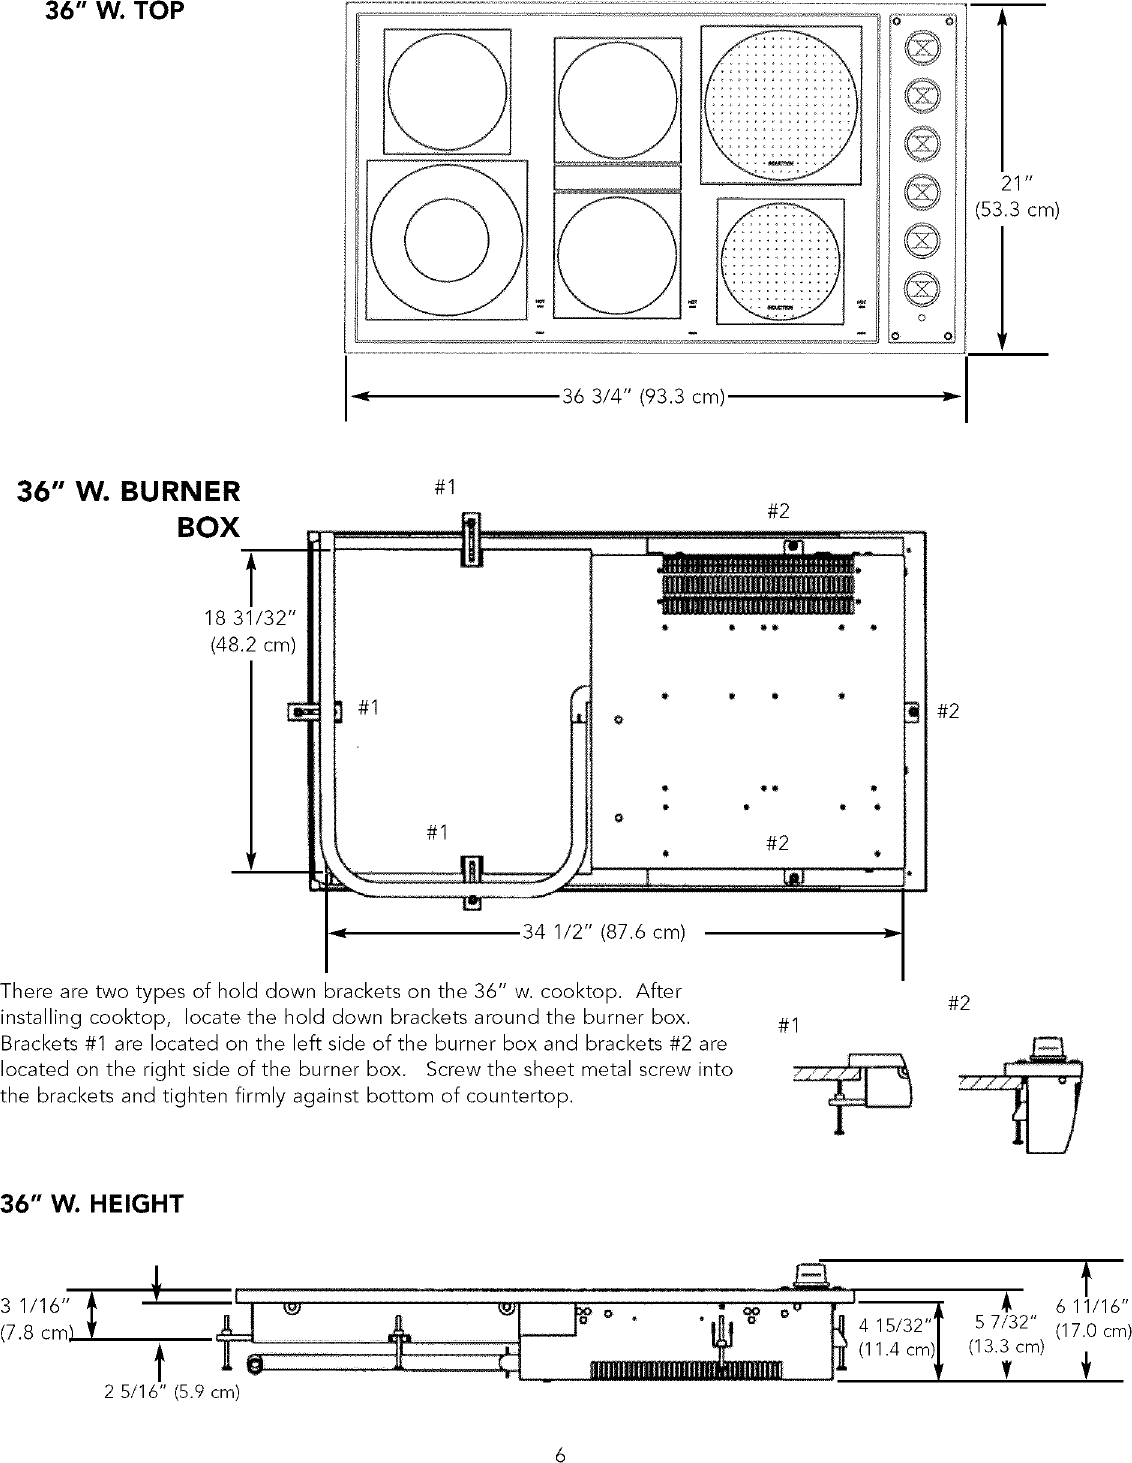 Viking Range Corp Built In Oven Electric Manual L0523325 Wiring Diagram Page 6 Of 12